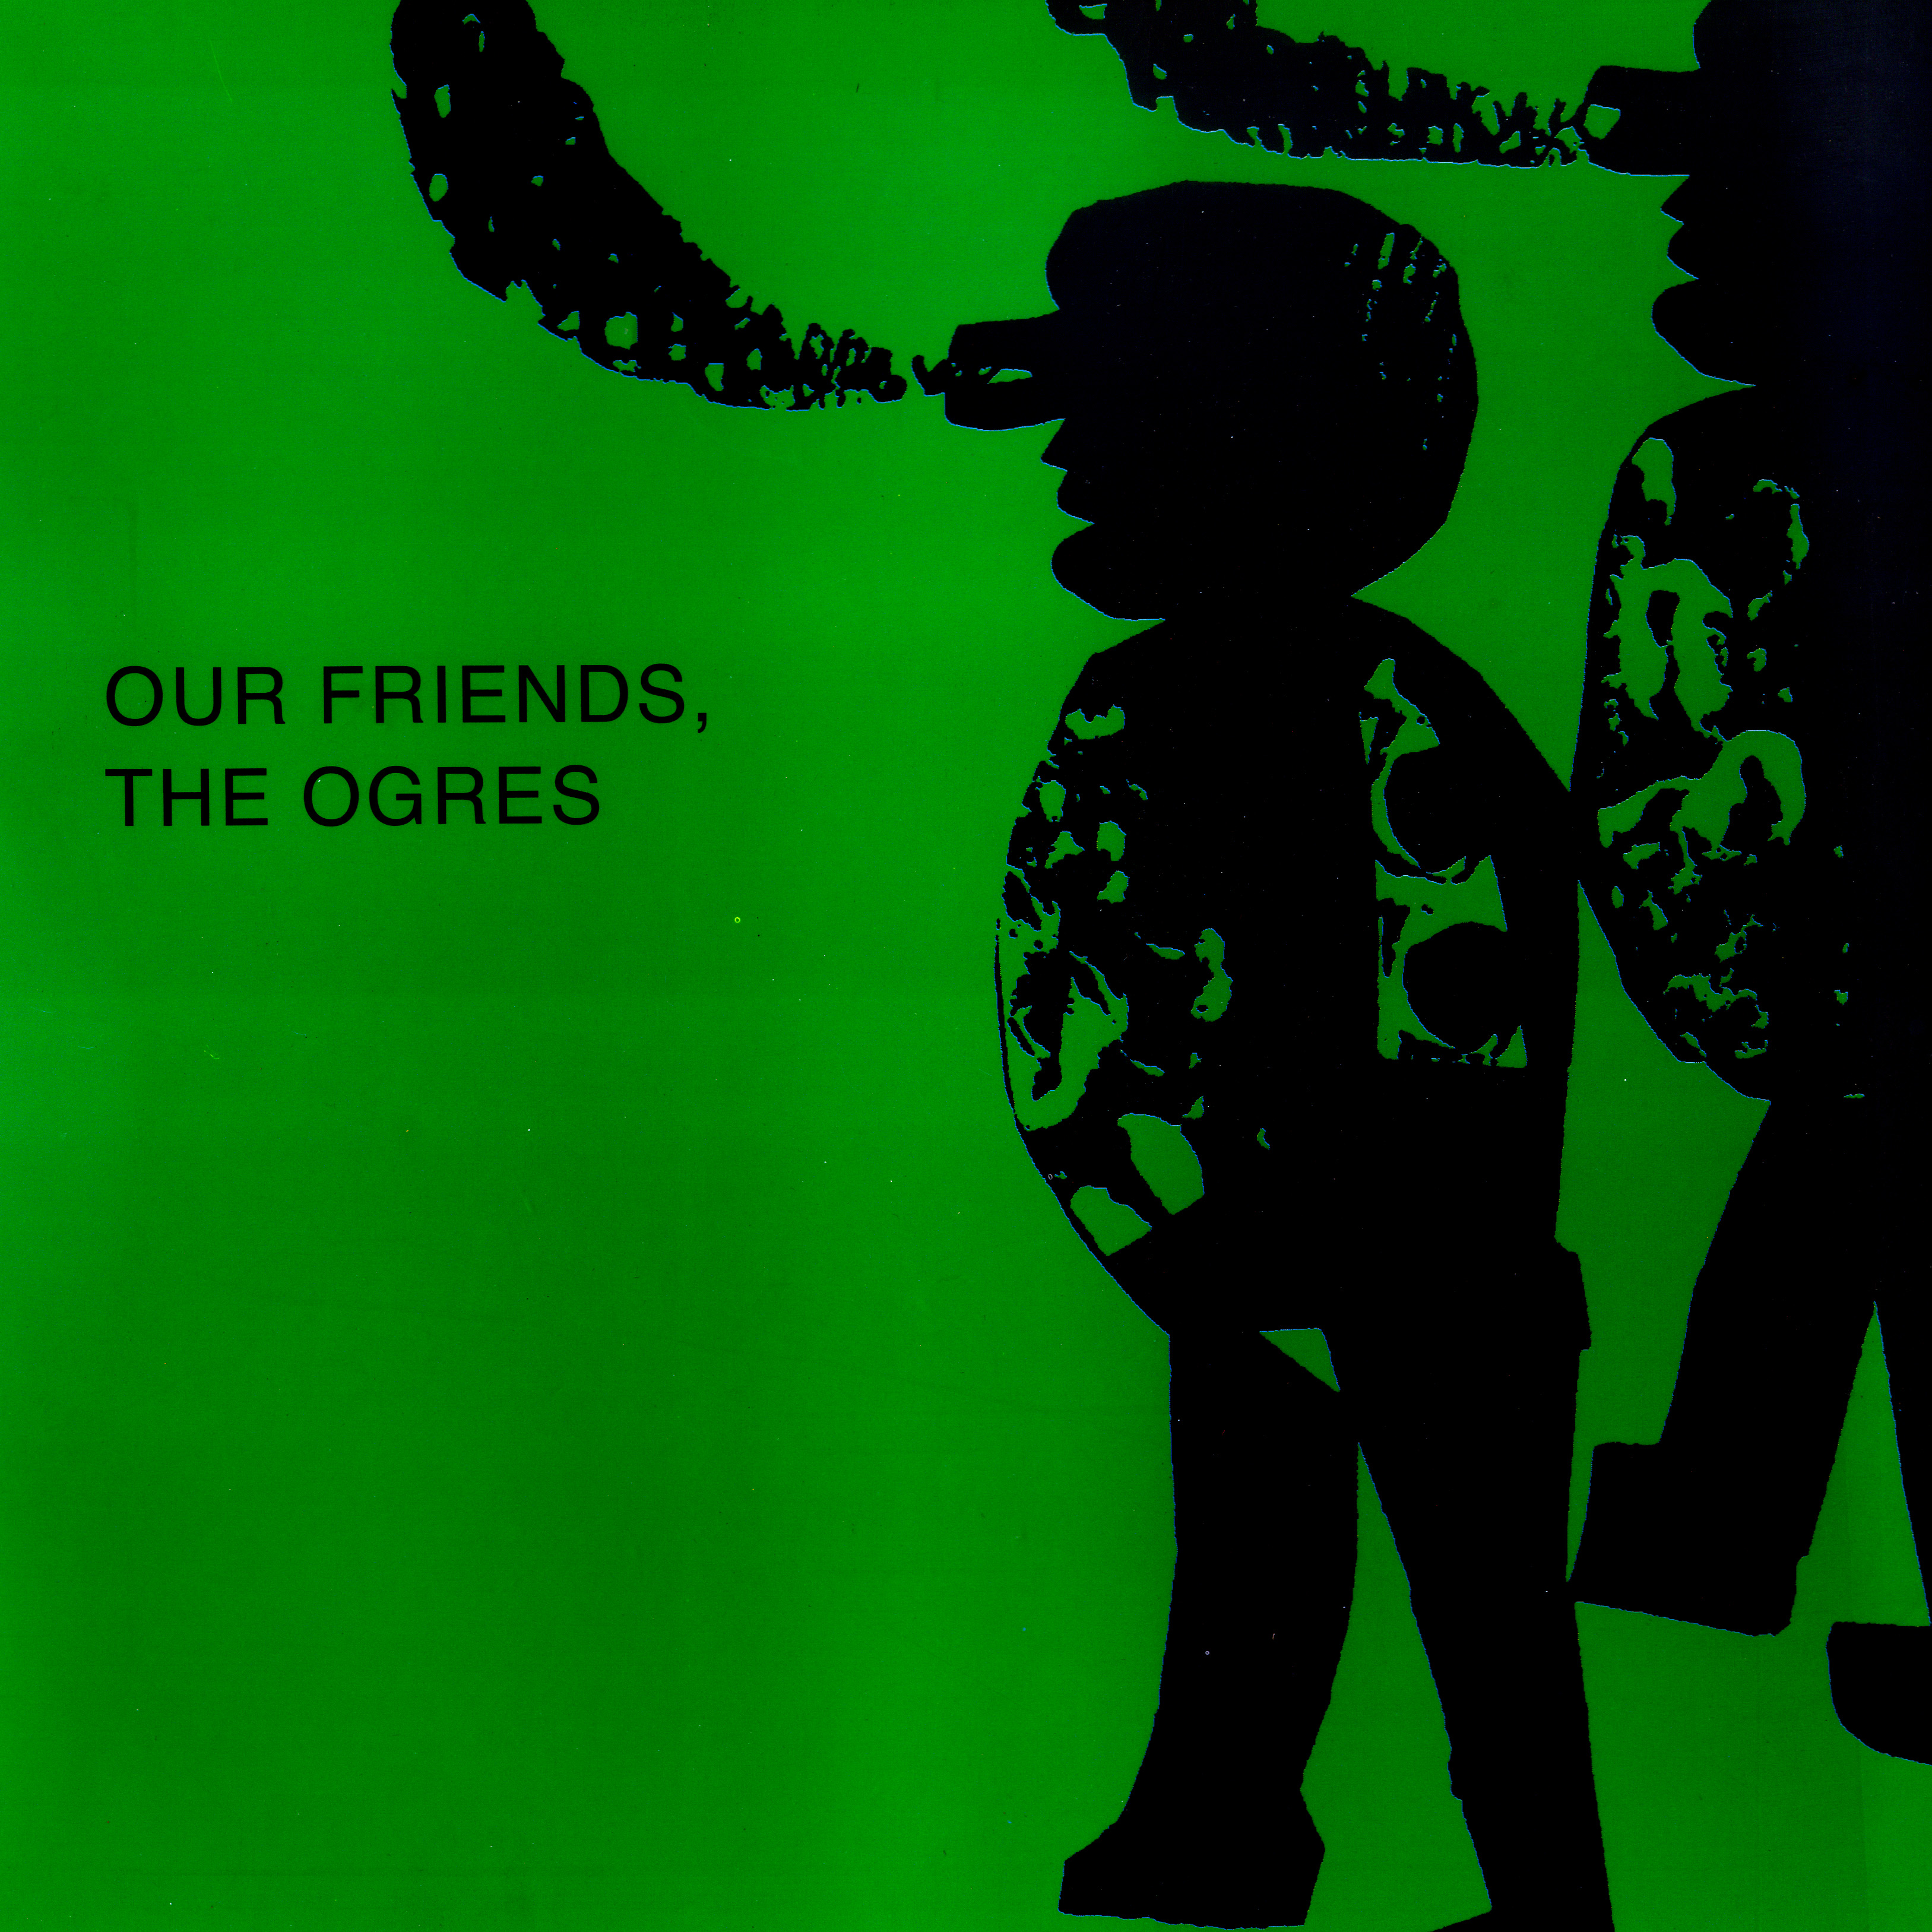 Our Friends, the Ogres by K. G. Subramanyan | Seagull Books